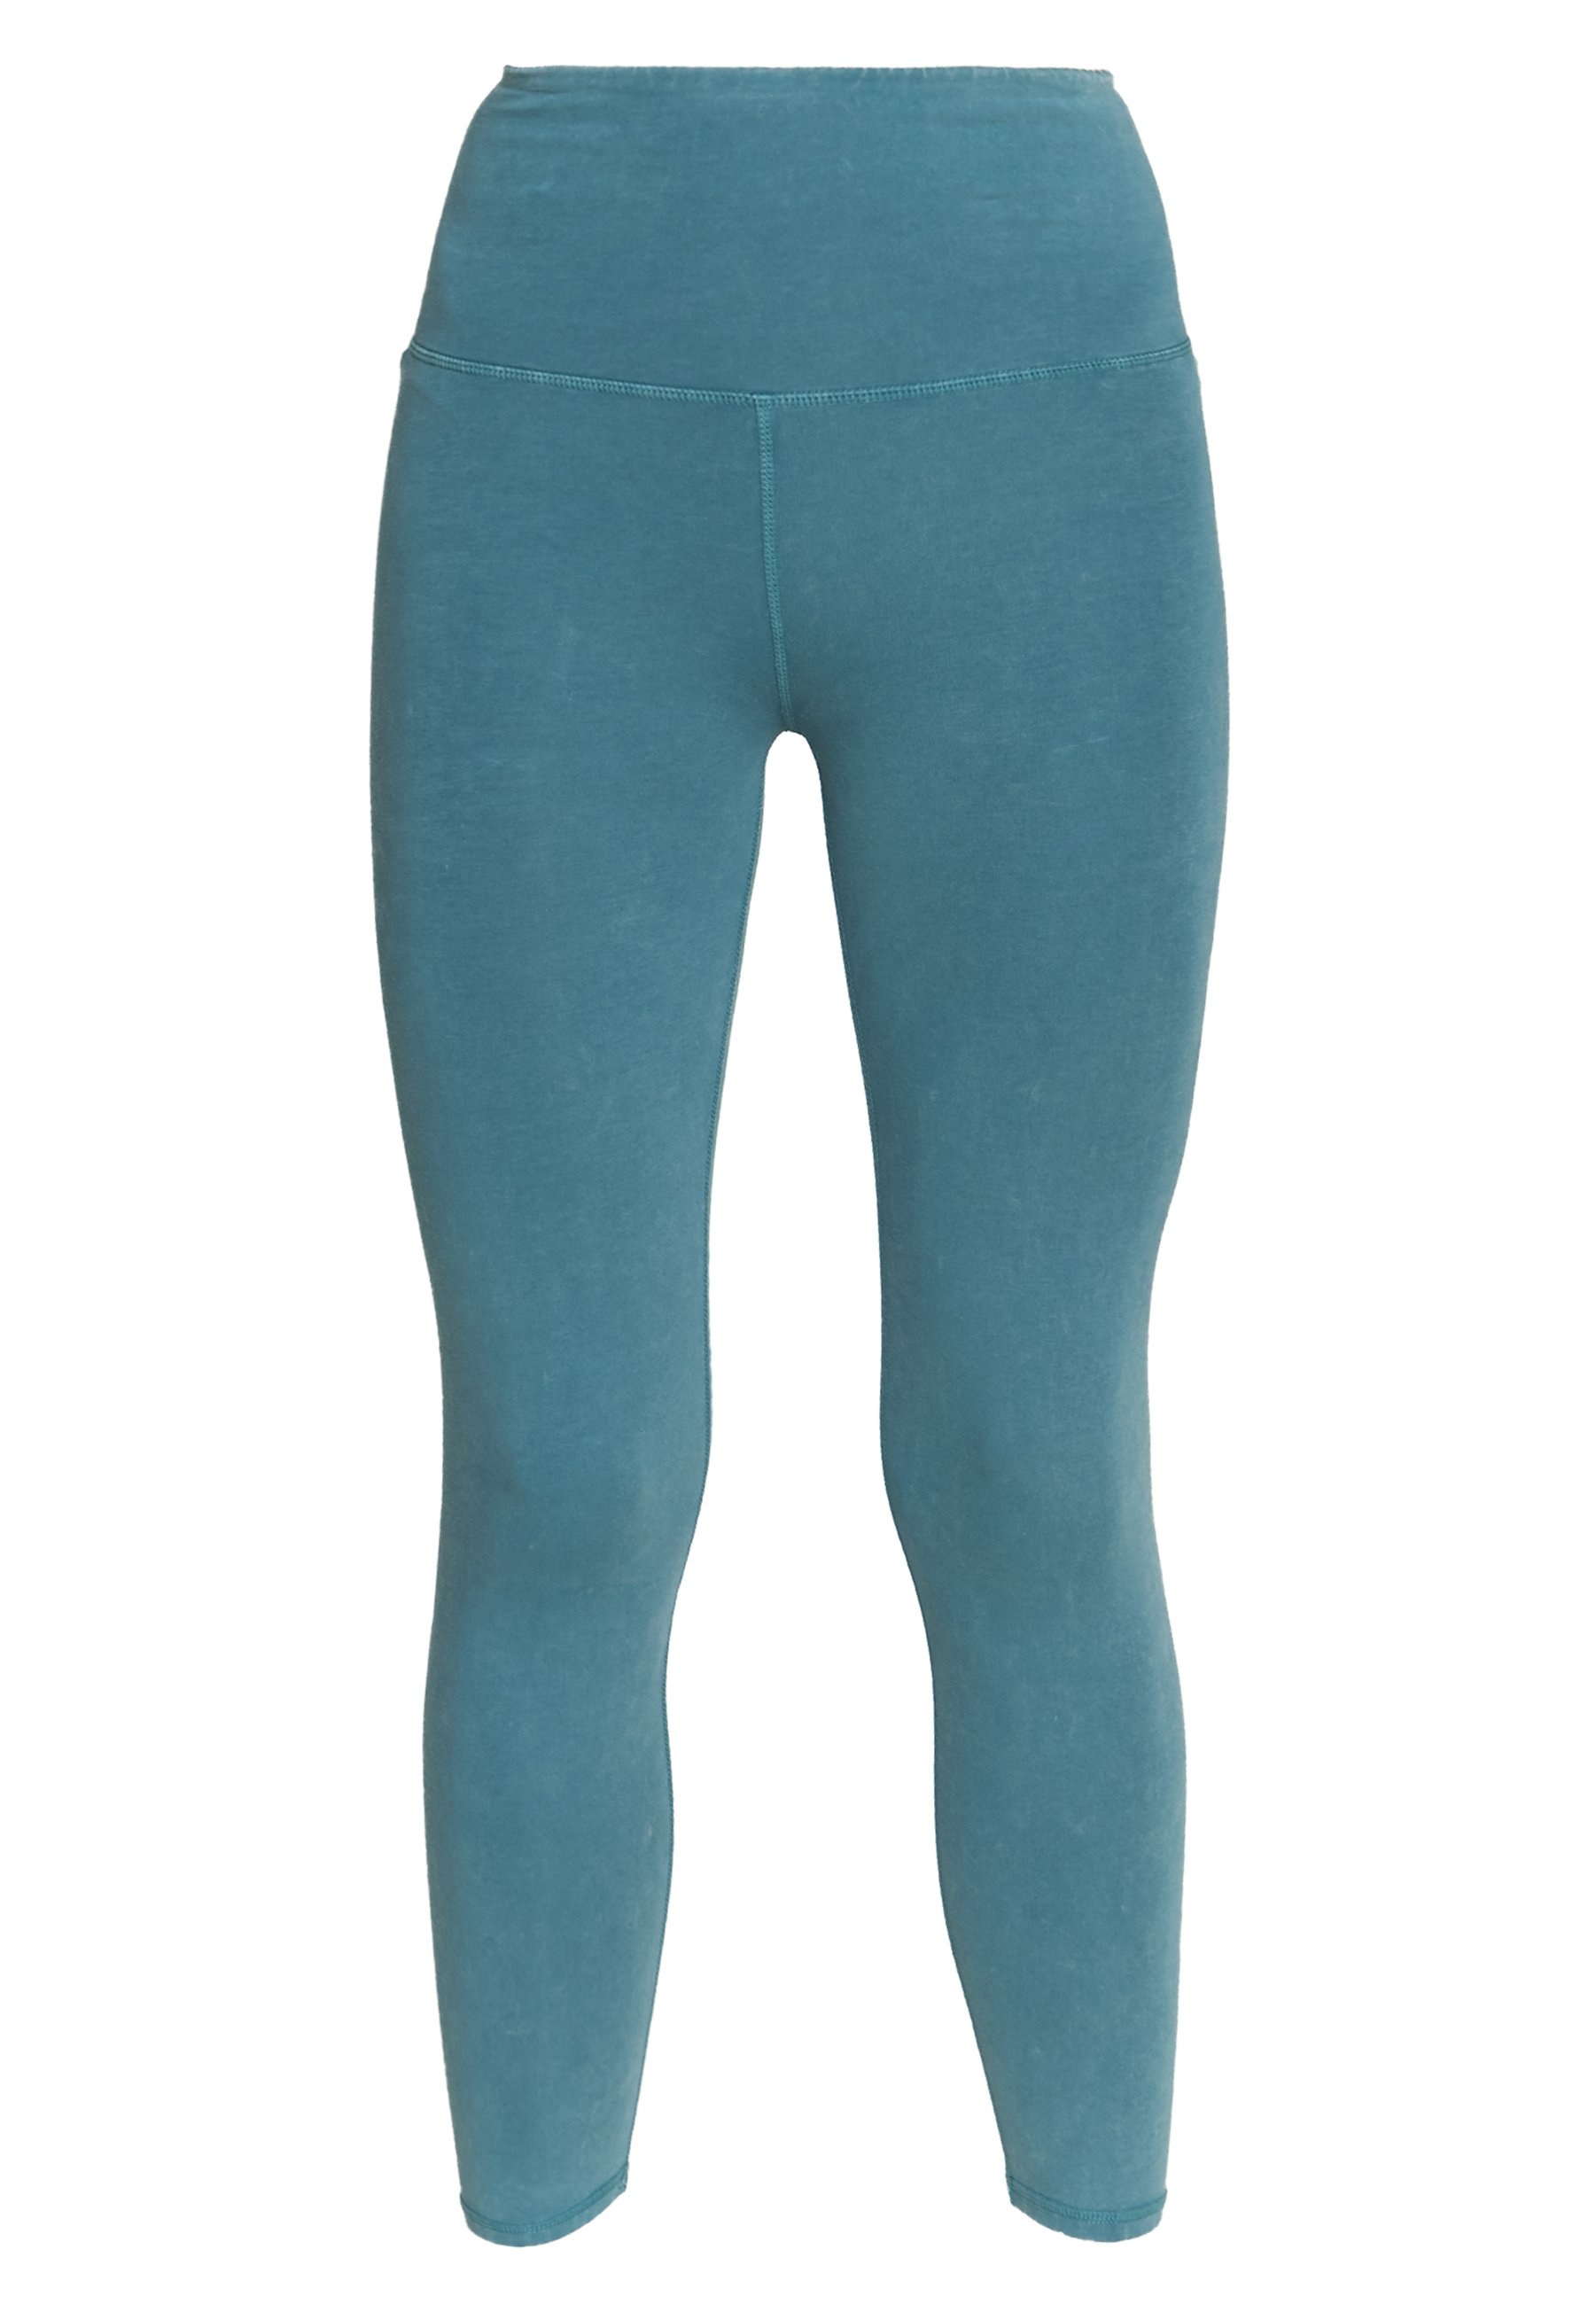 Cotton On Body 7/8 Leggings - Collants Mineral Teal Wash